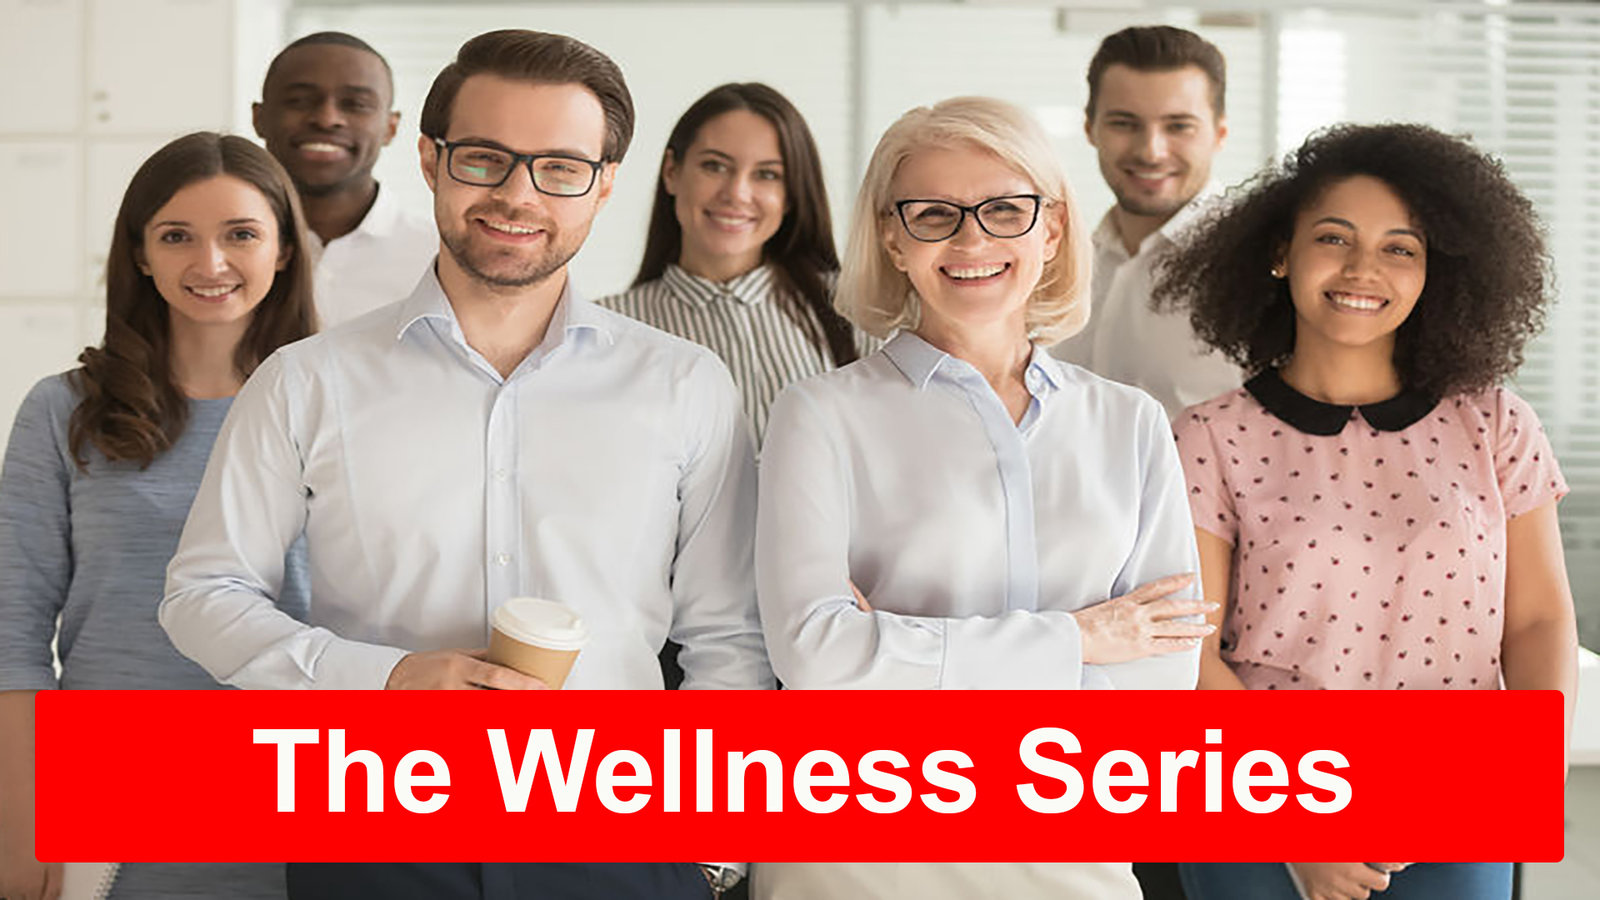 The Wellness Series